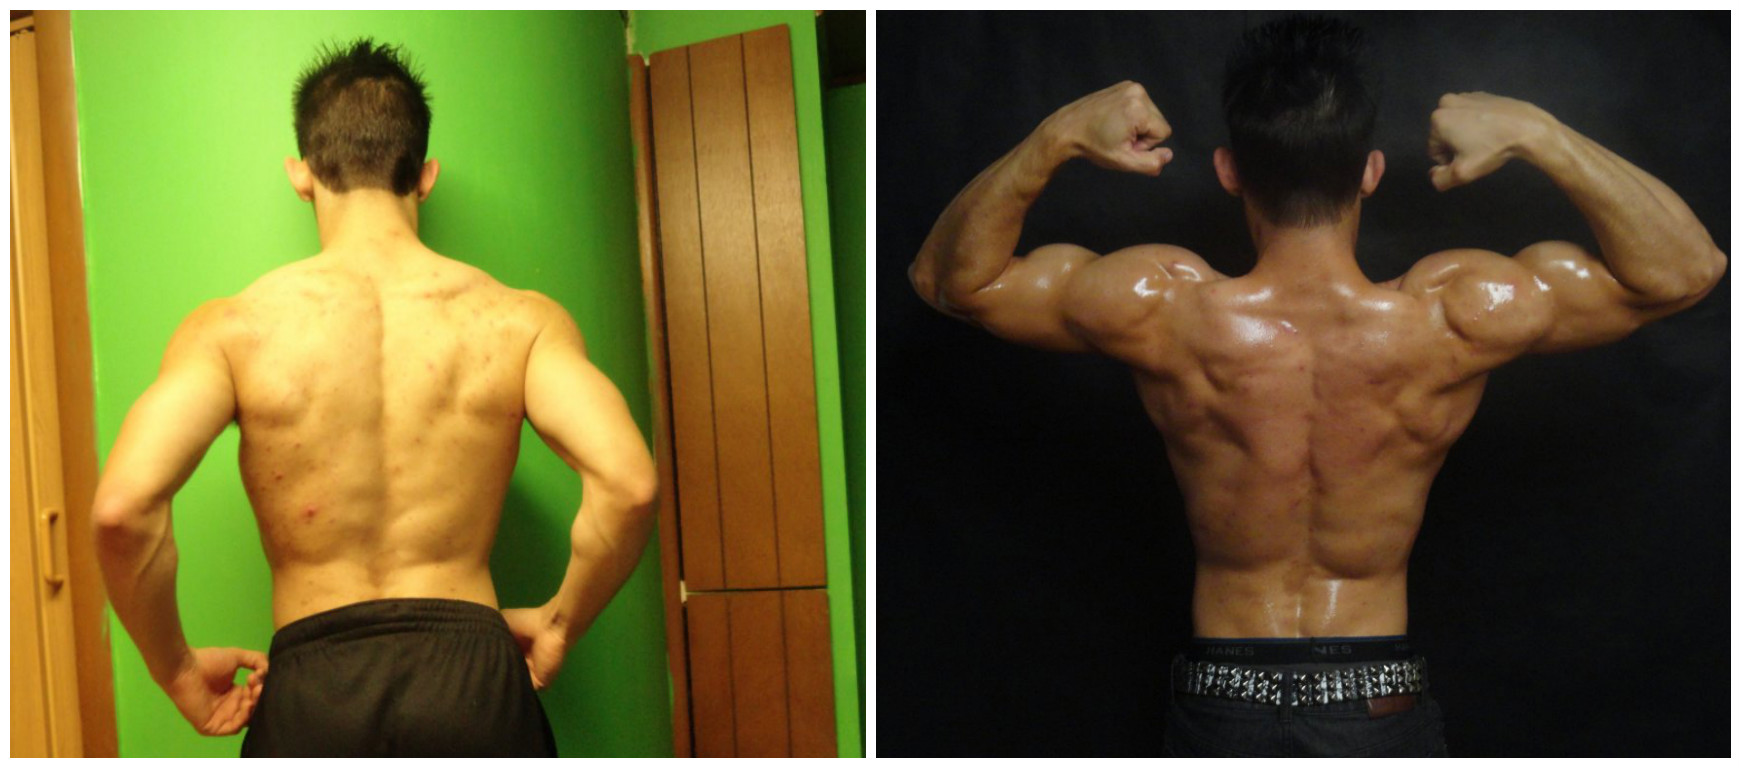 Lance Quenneville - 3rd Place - Back Before/After Photos